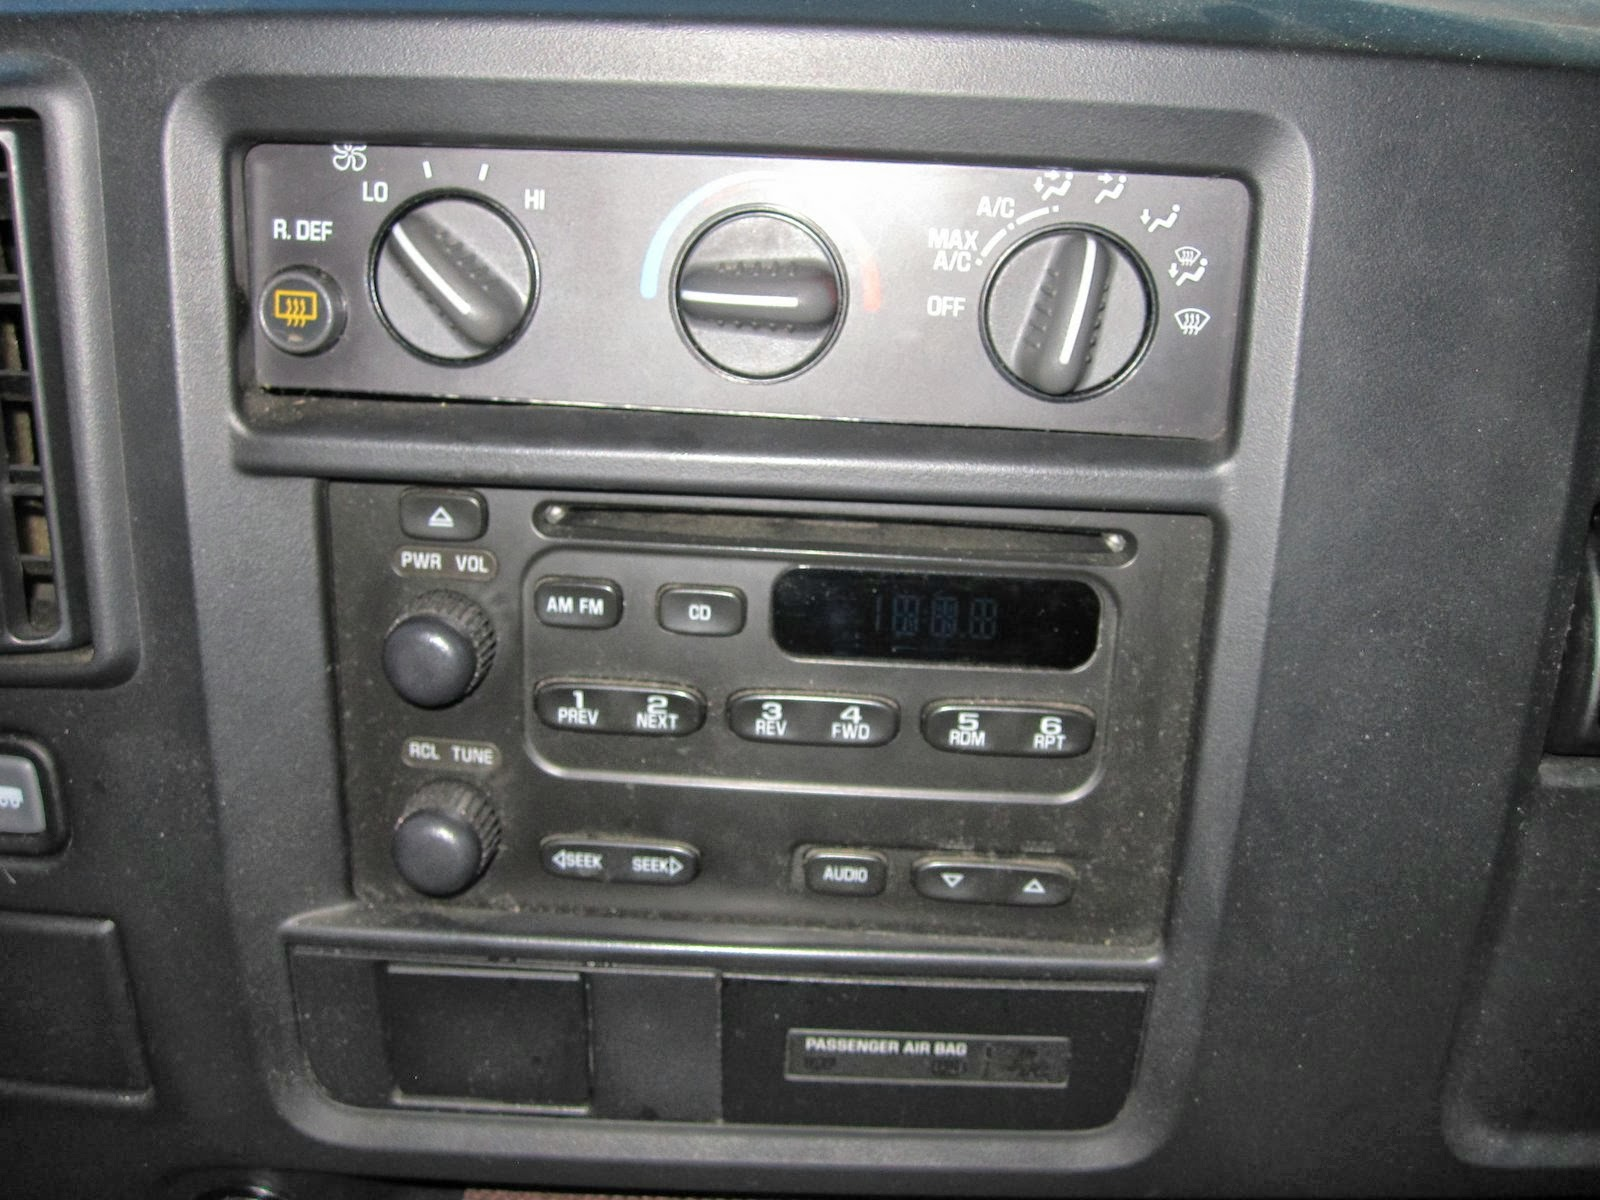 2011 Chevy Van Factory Radio Wiring Trusted Diagrams 2006 Chevrolet Silverado Stereo Diagram Replacing The From A Express To Diy Rh Camperexpress Blogspot Com 1998